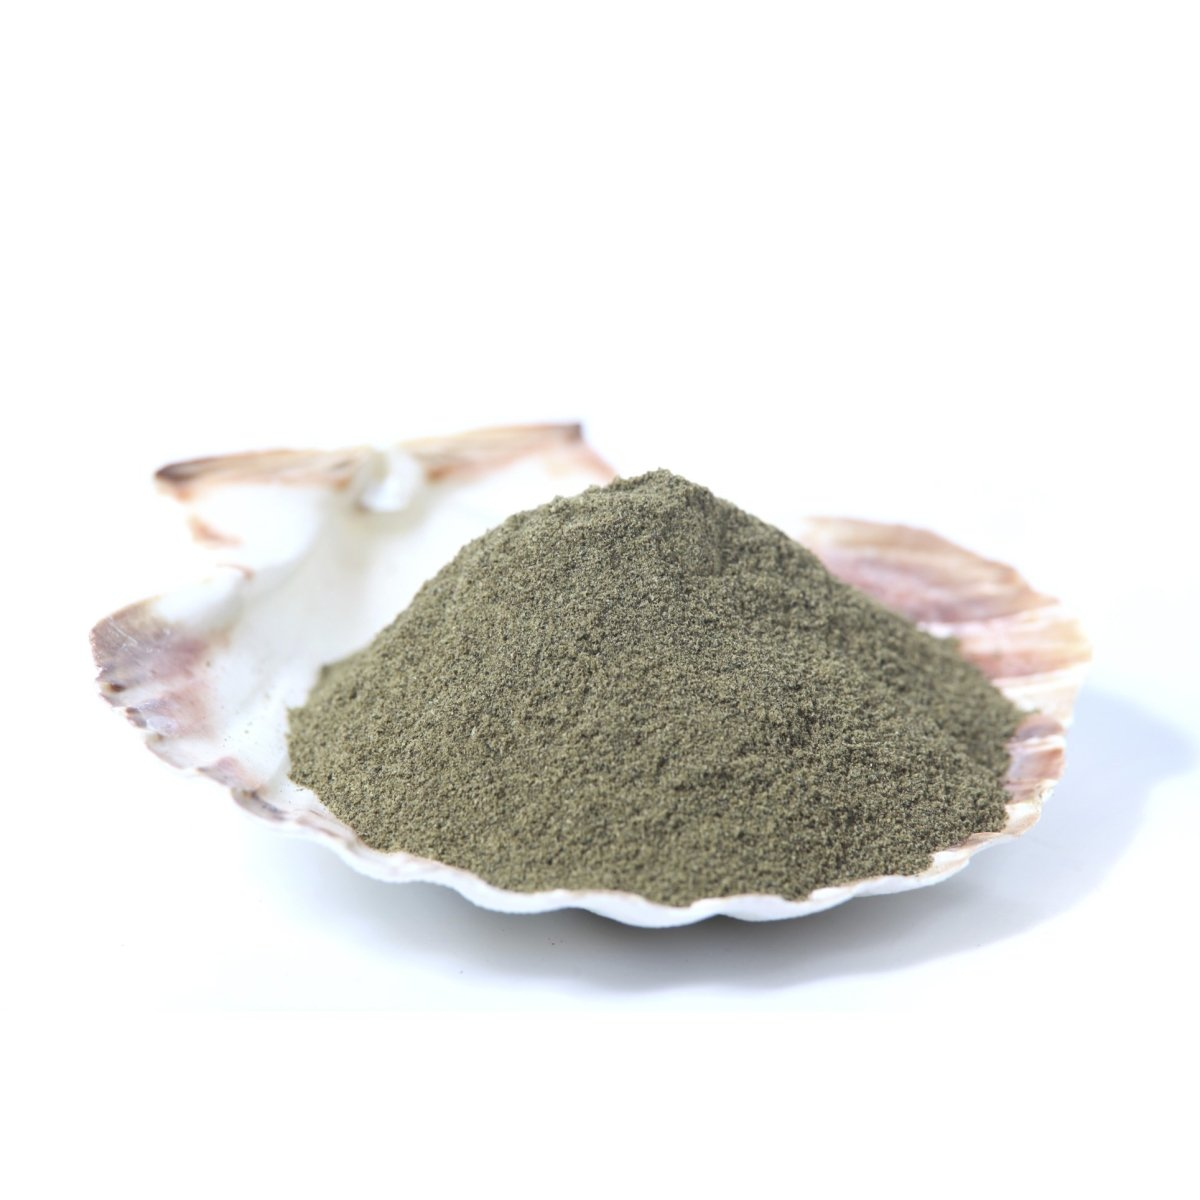 Seaweed Powder - Raw Materials - Mystic Moments UK